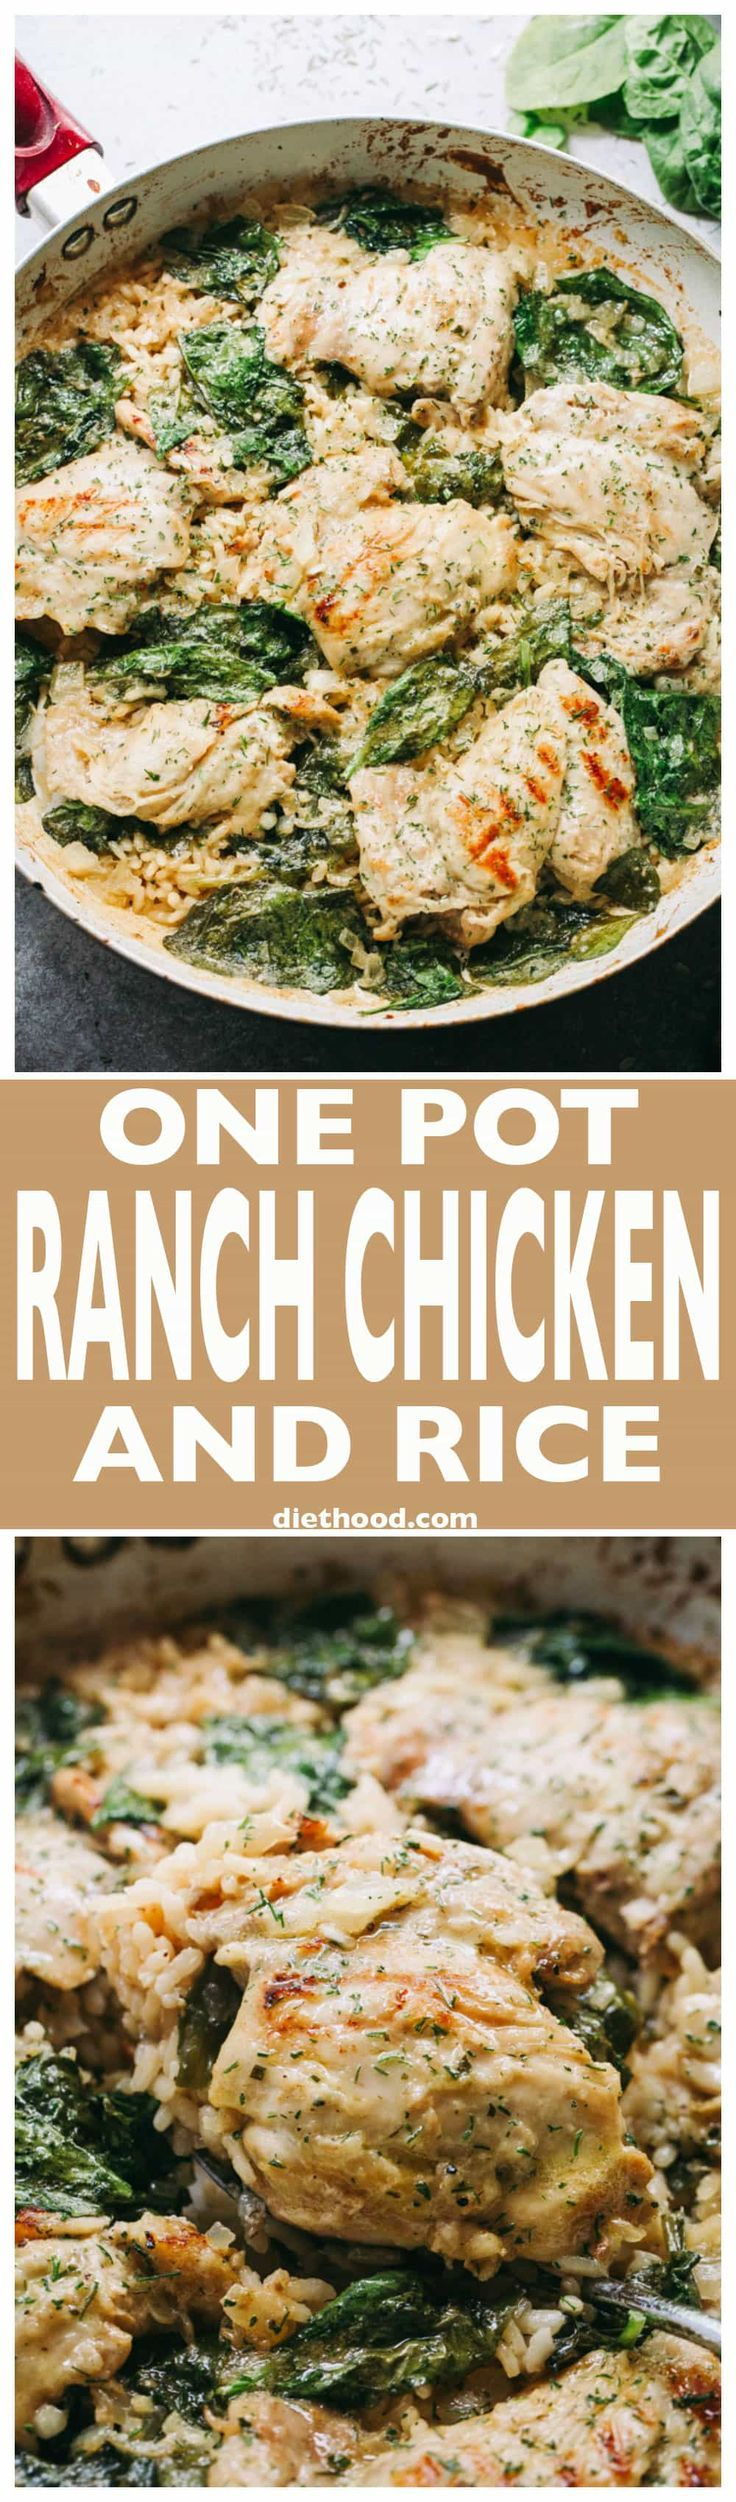 One Pot Ranch Chicken and Rice - Easy, quick, and delicious ranch flavored chicken cooked in one pot with rice and spinach. via @diethood